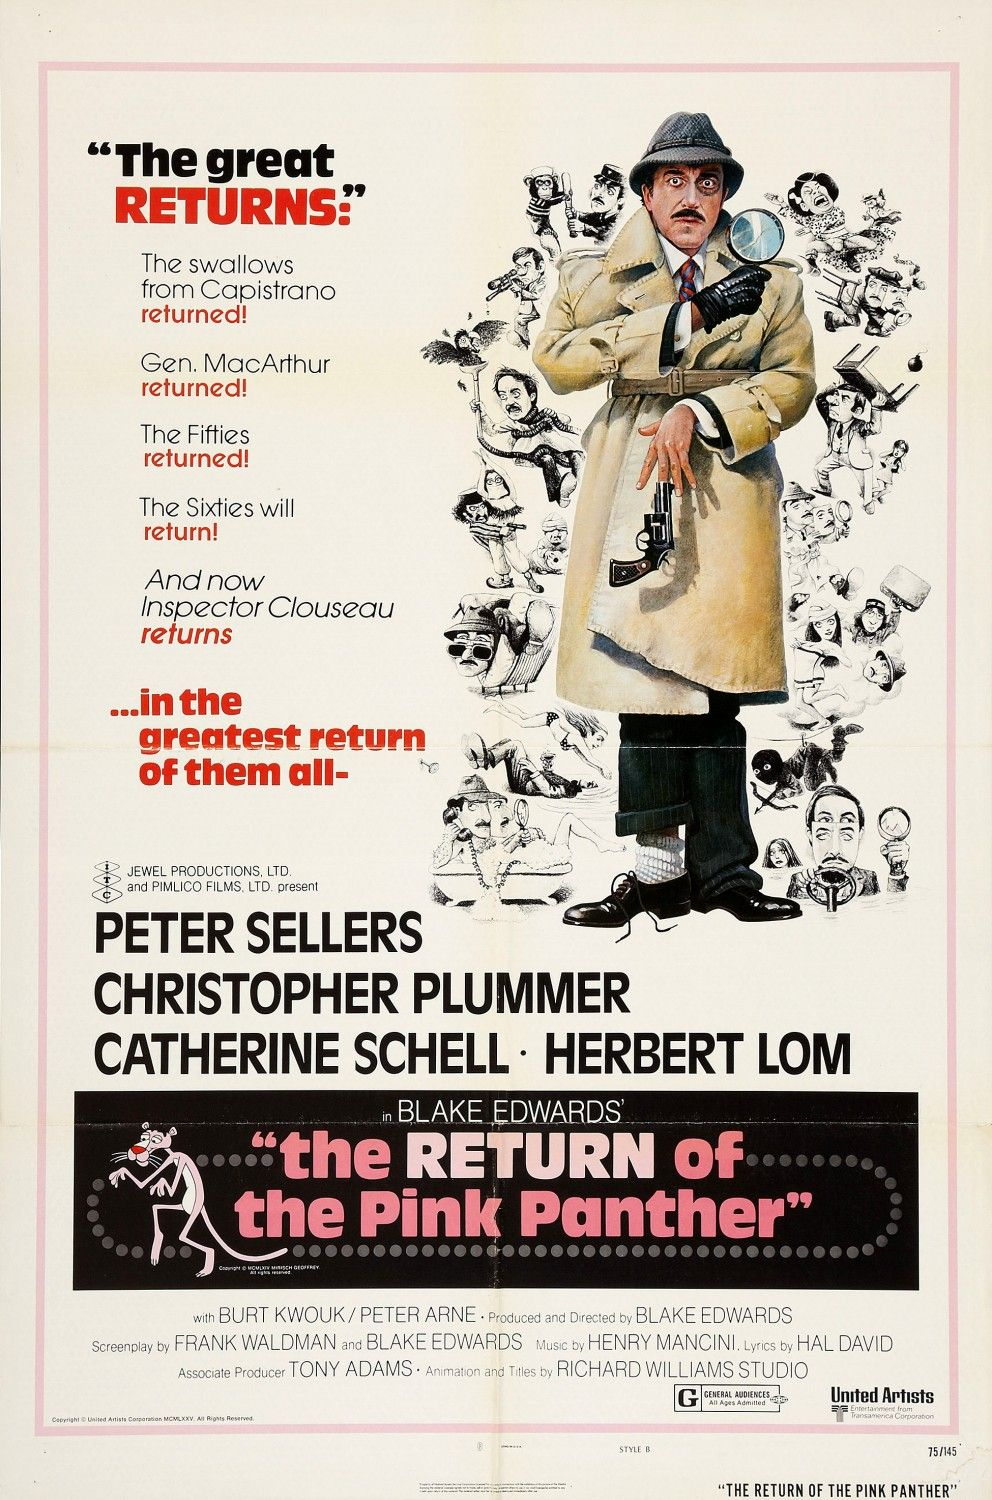 The Return Of The Pink Panther Extra Large Movie Poster Image Internet Movie Poster Awards Gallery Best Movie Posters Pink Panthers Movie Posters